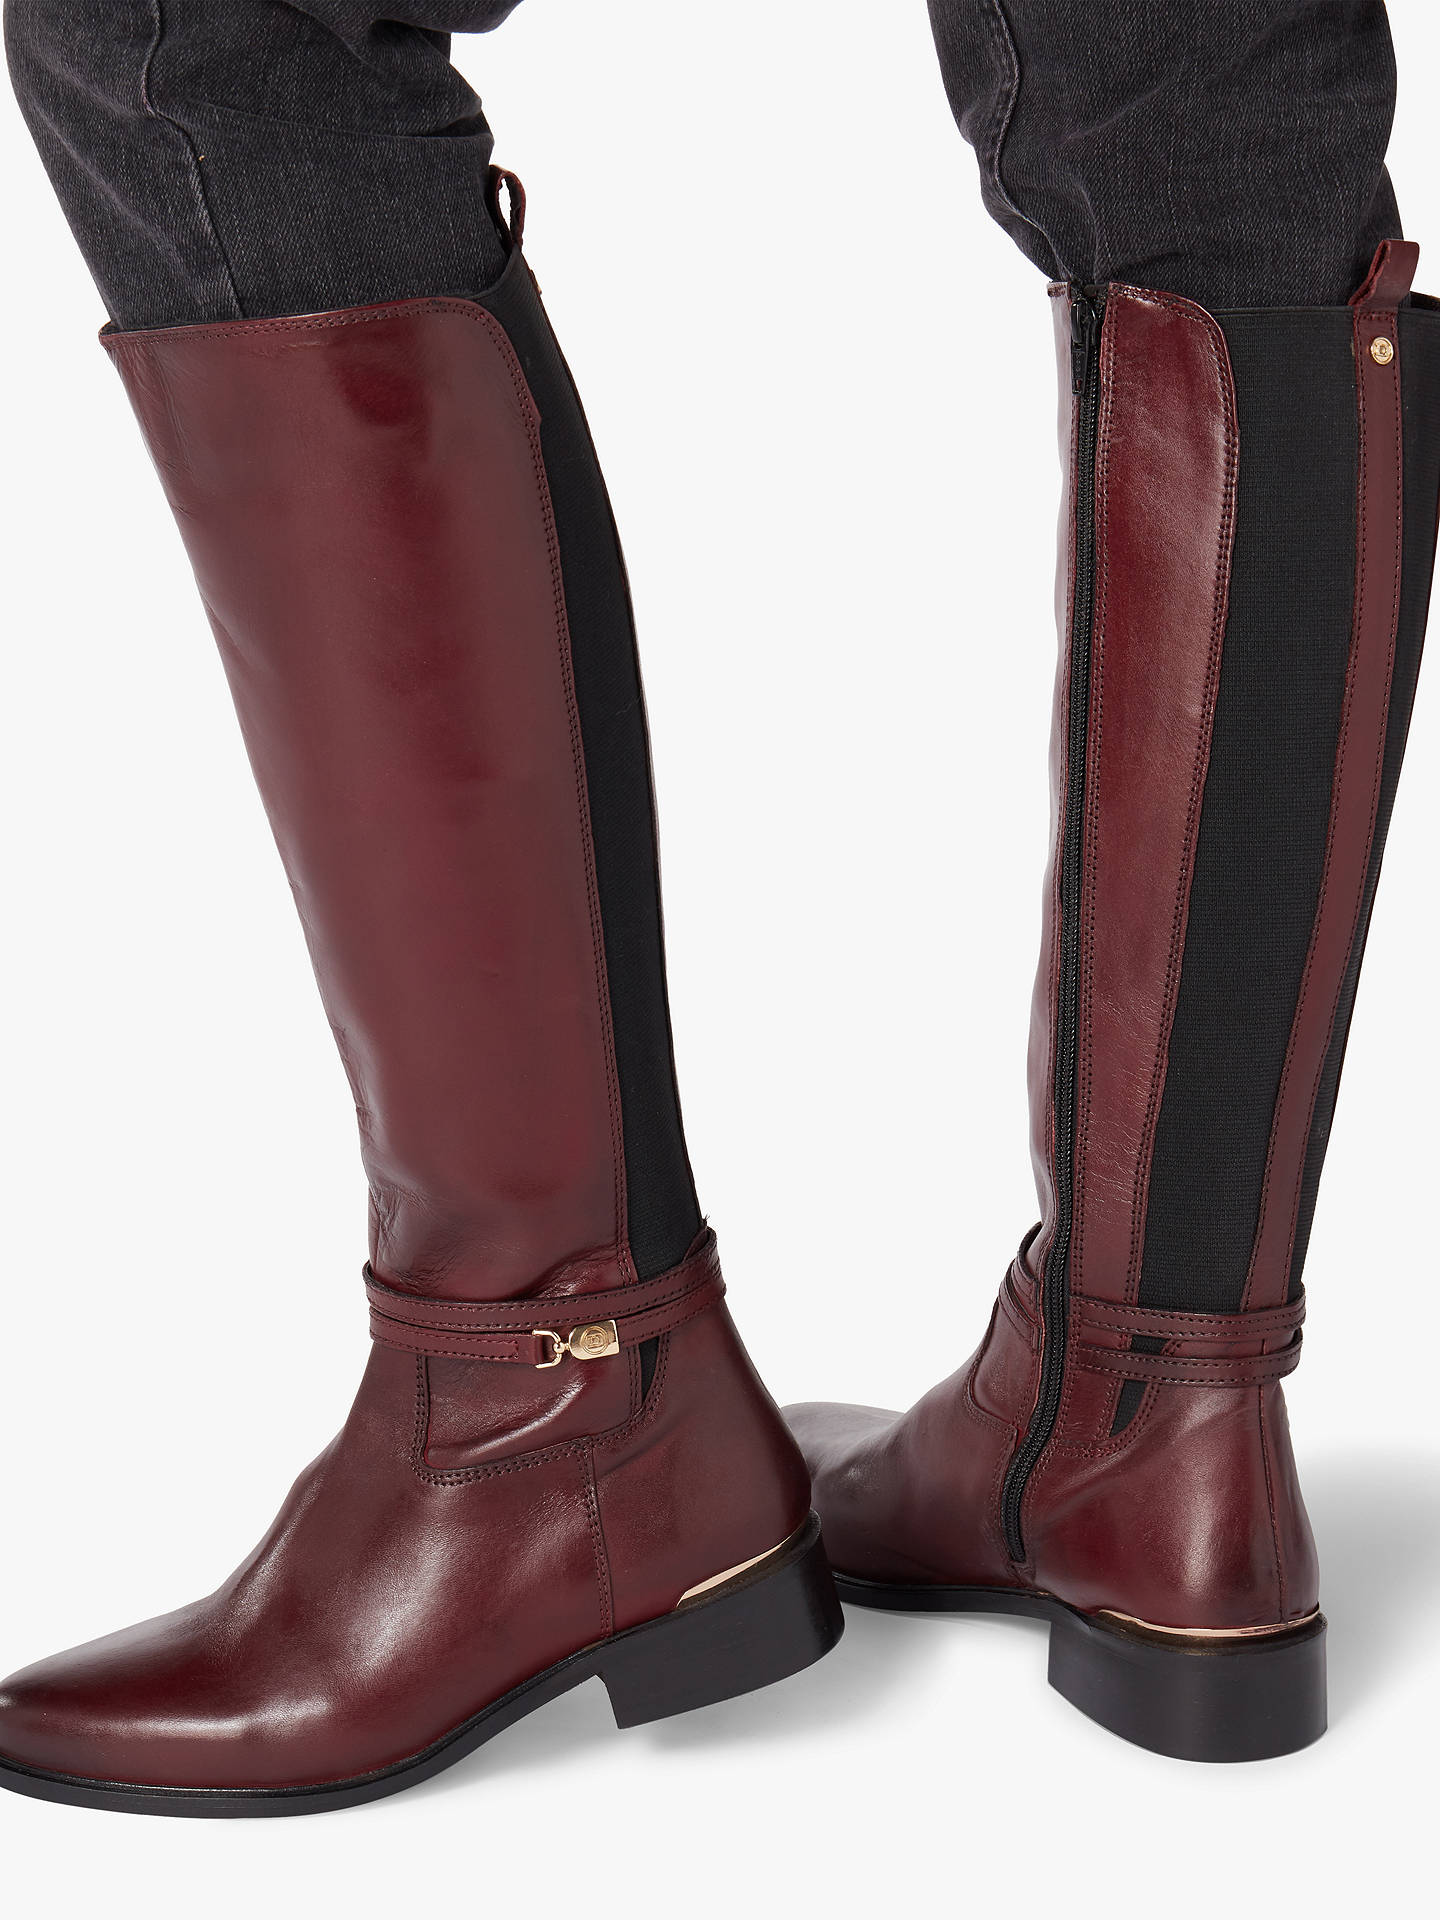 7583b5096f07 ... Buy Dune Traviss Knee Boots, Burgundy Leather, 3 Online at  johnlewis.com ...